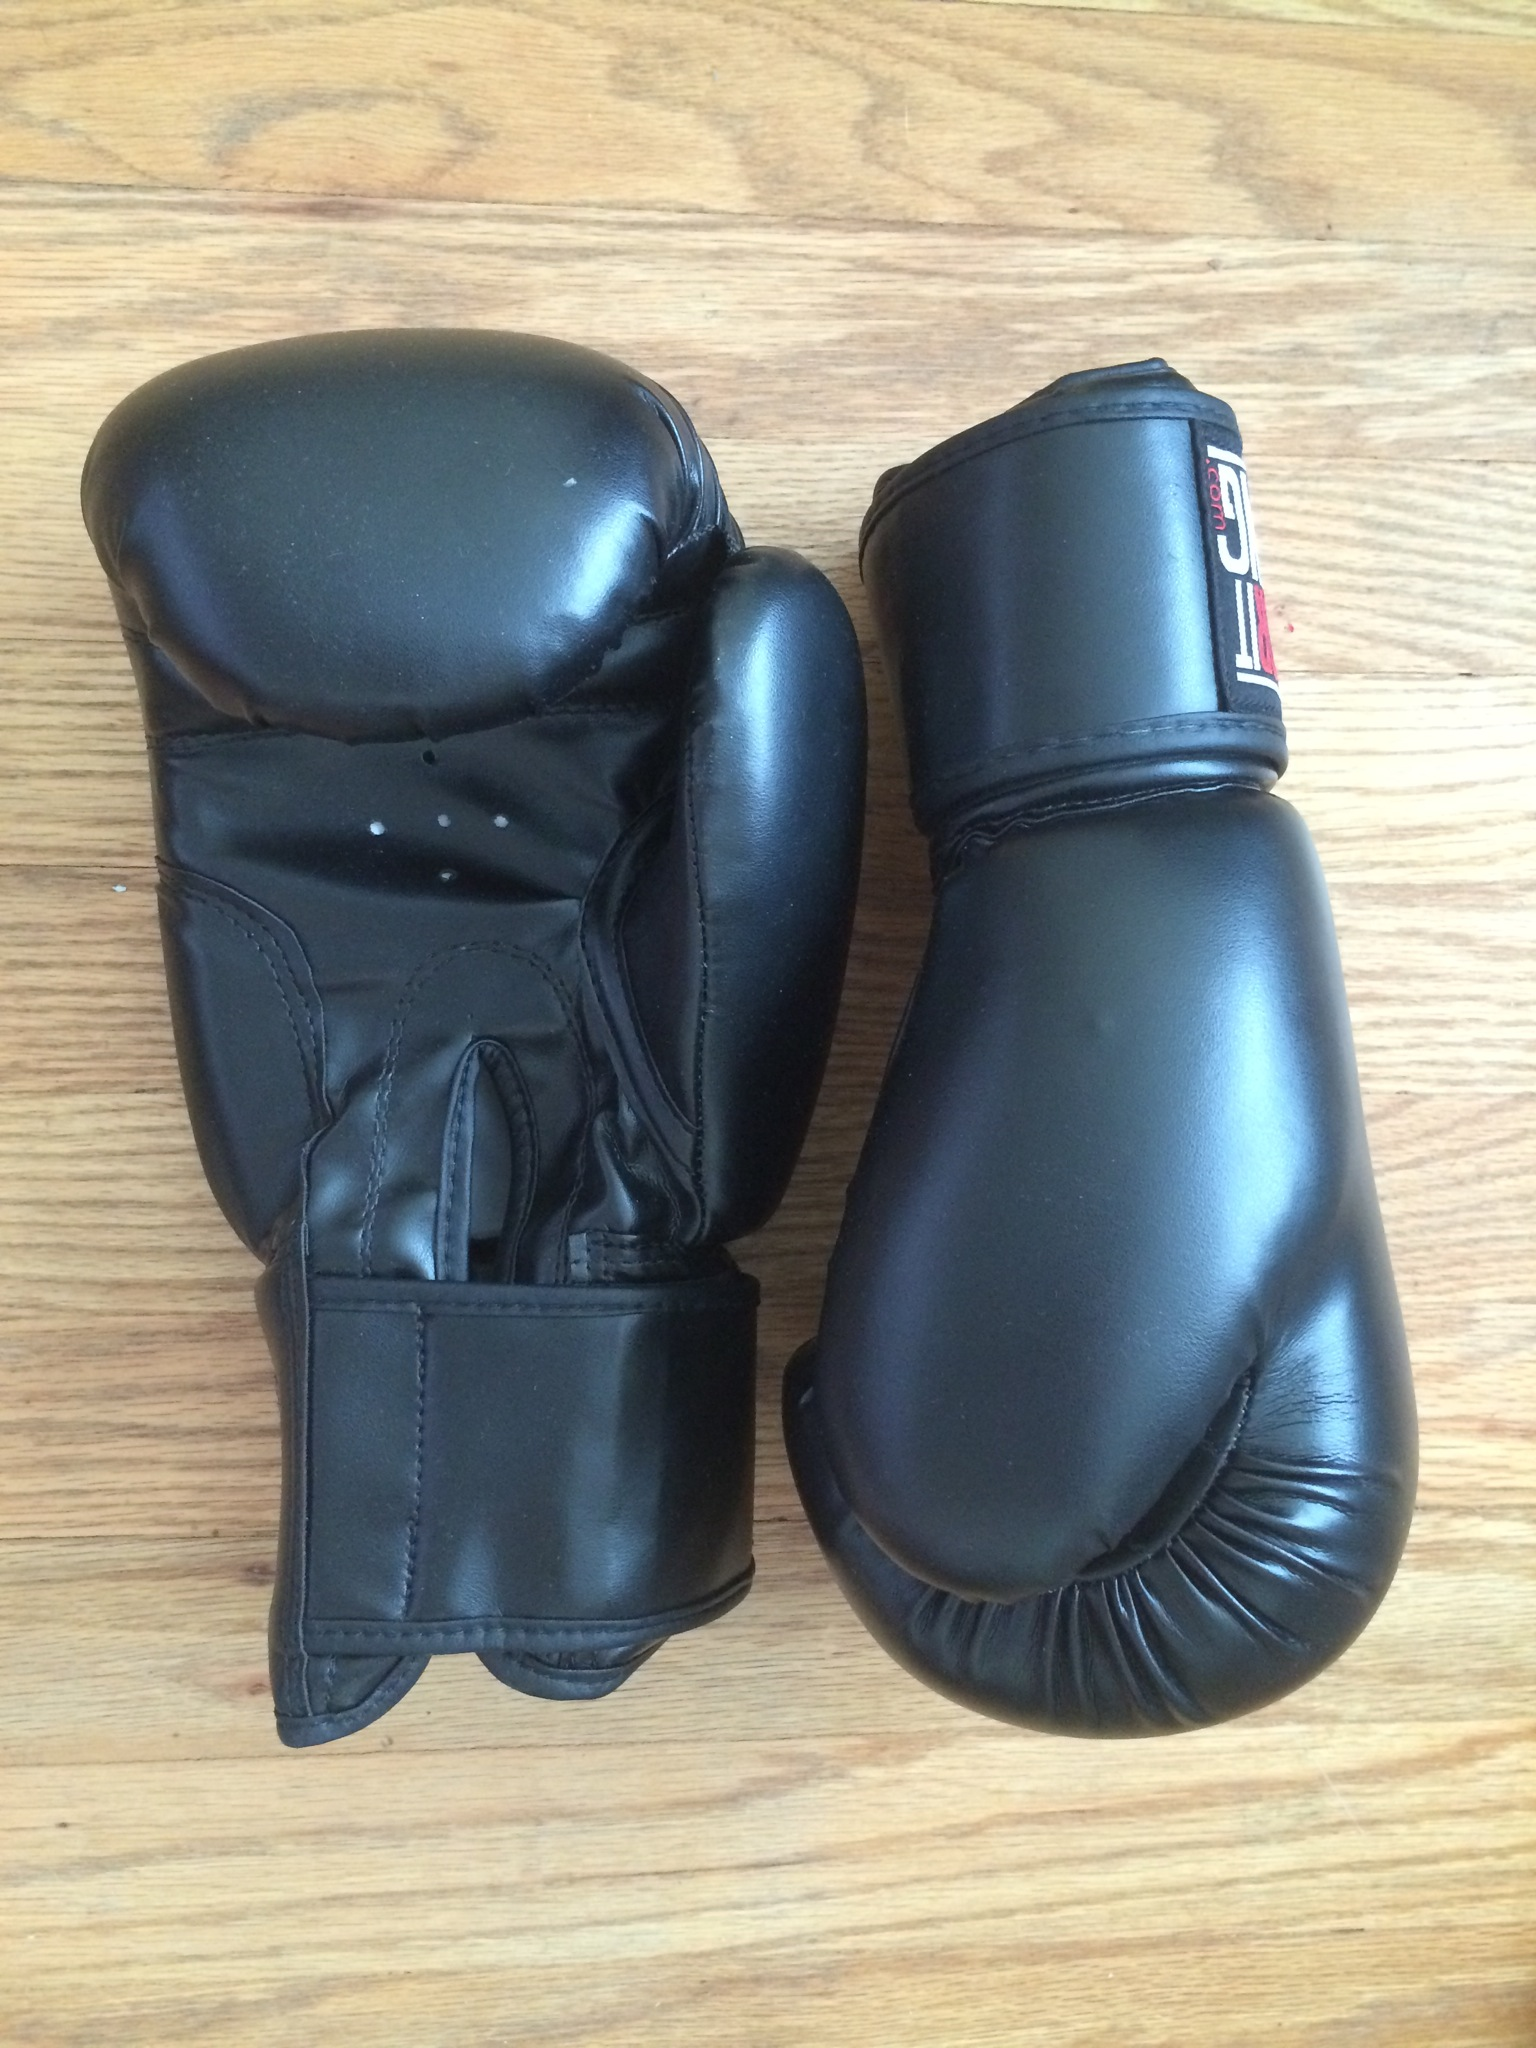 My gloves. They also came in pink, but I'll always prefer black.